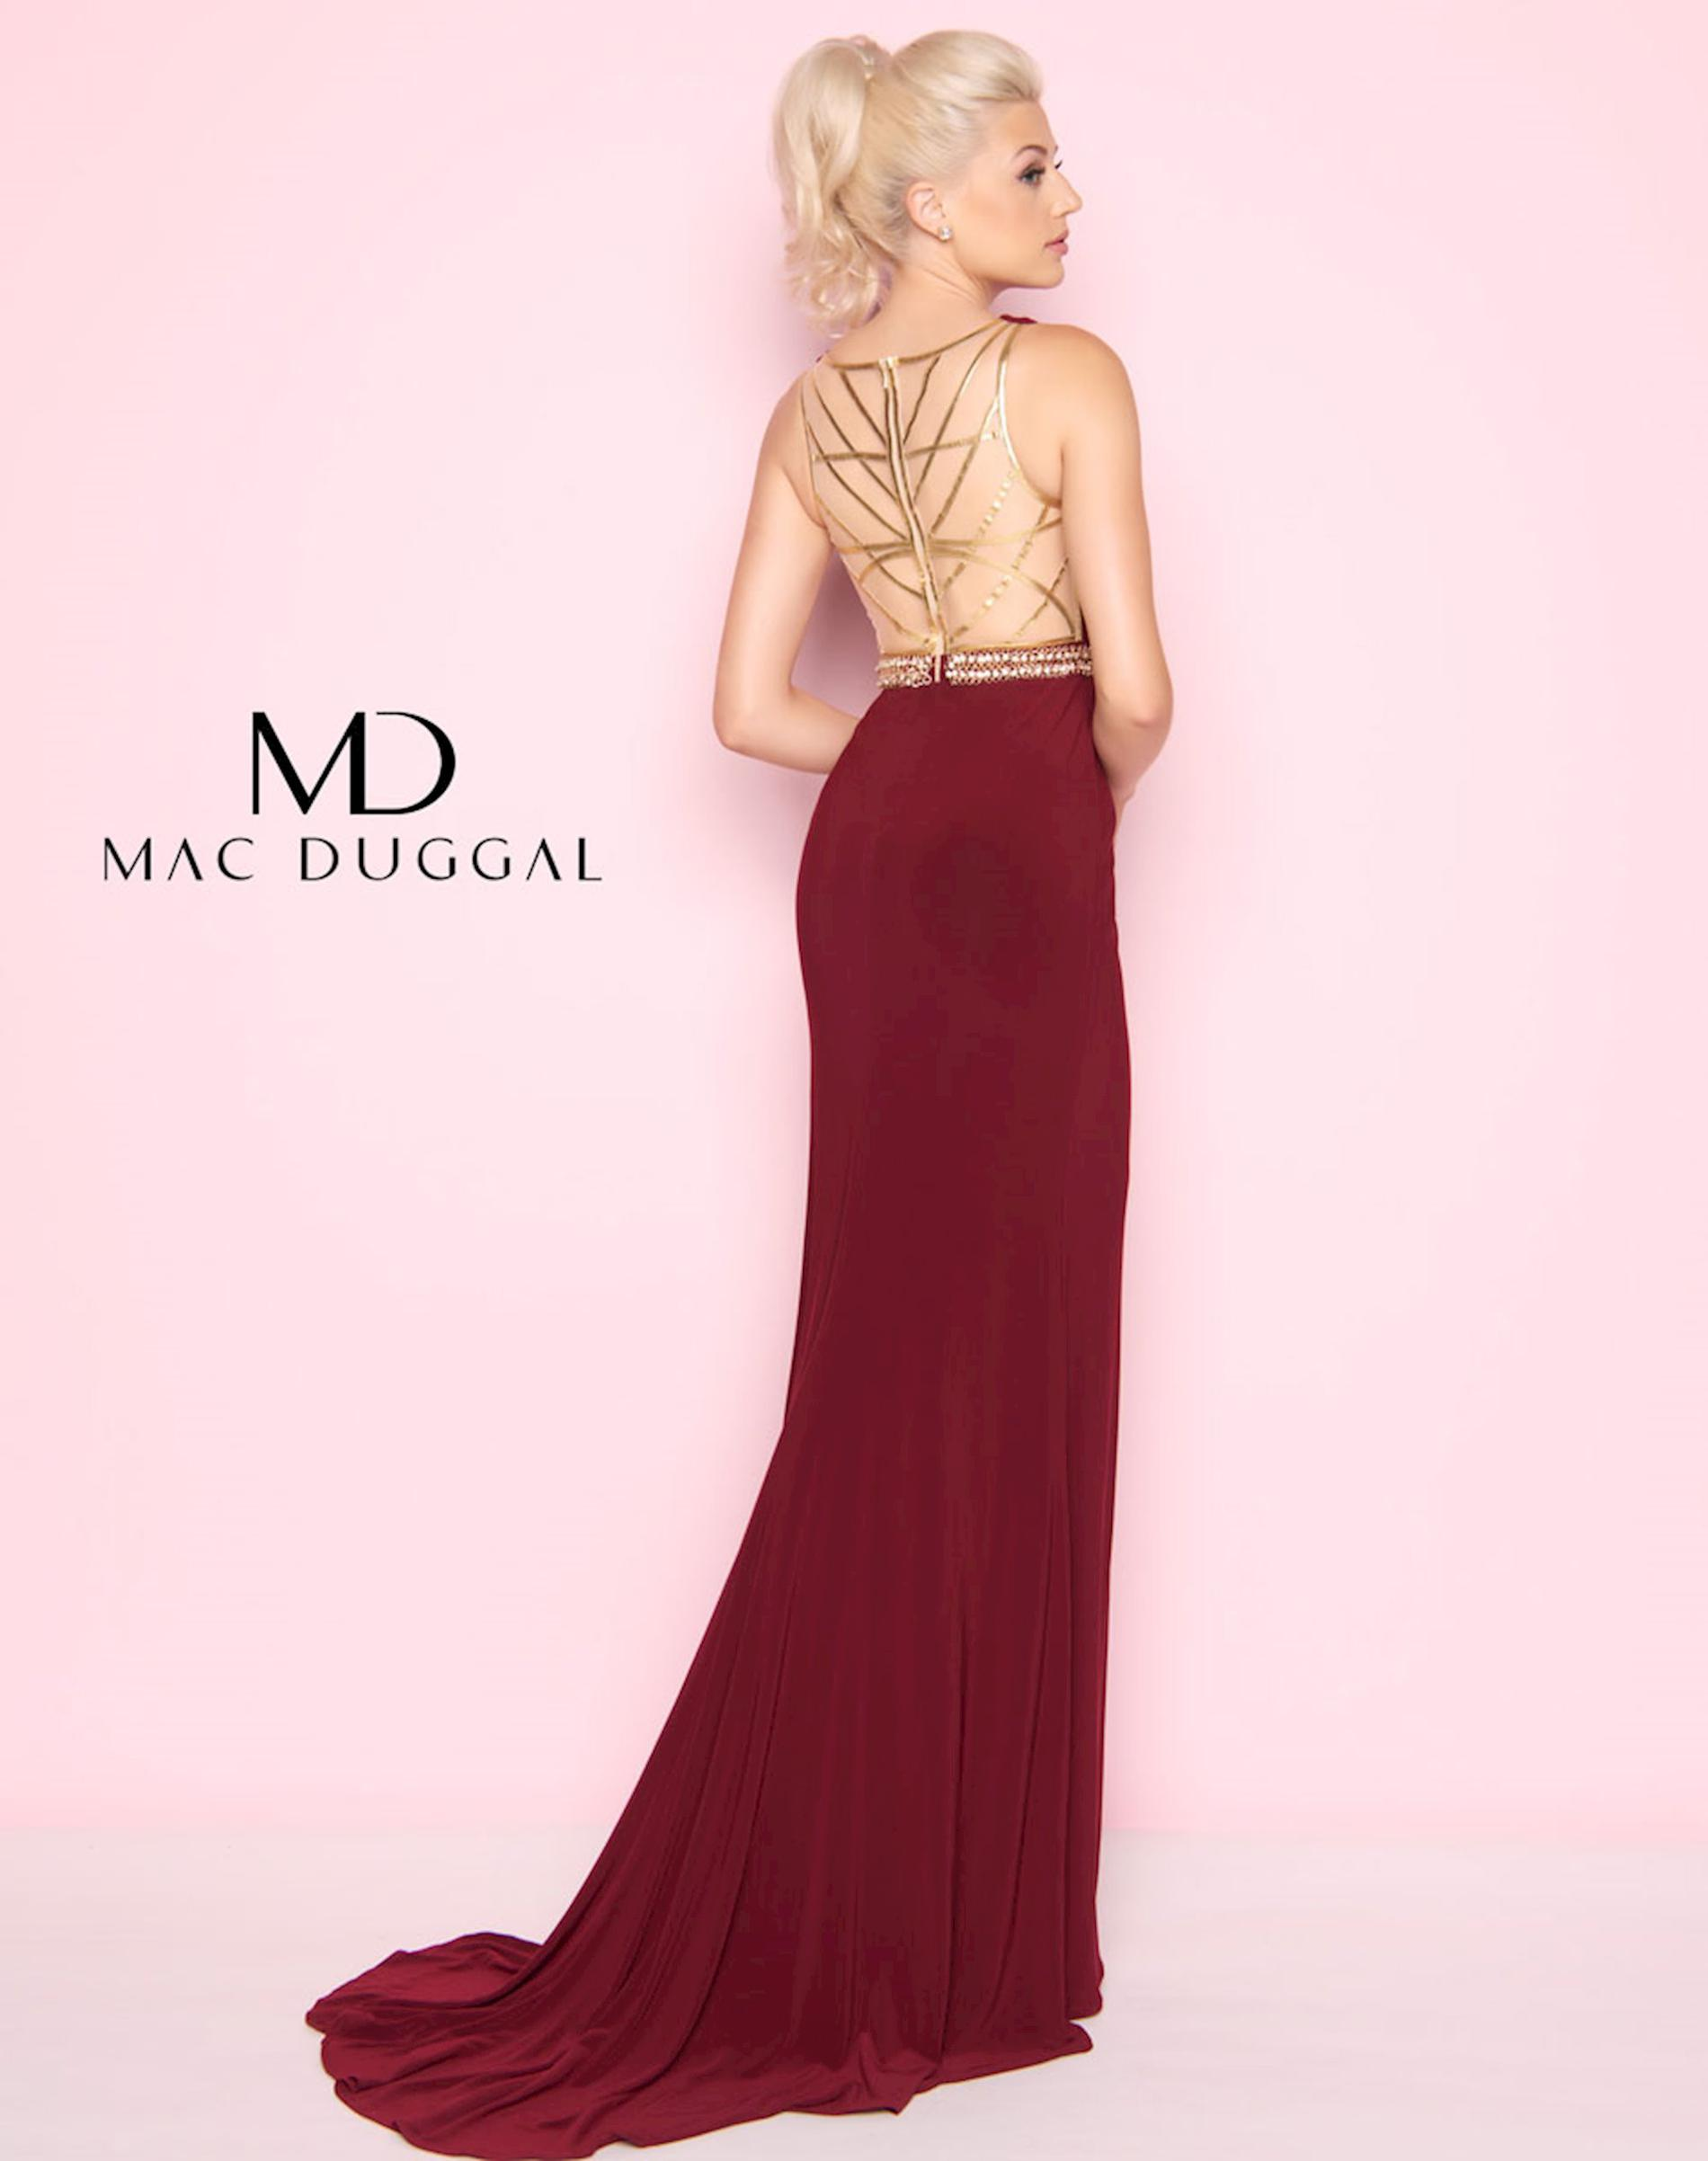 Style 2012 Mac Duggal Red Size 18 Sorority Formal Tall Height Wedding Guest Side slit Dress on Queenly